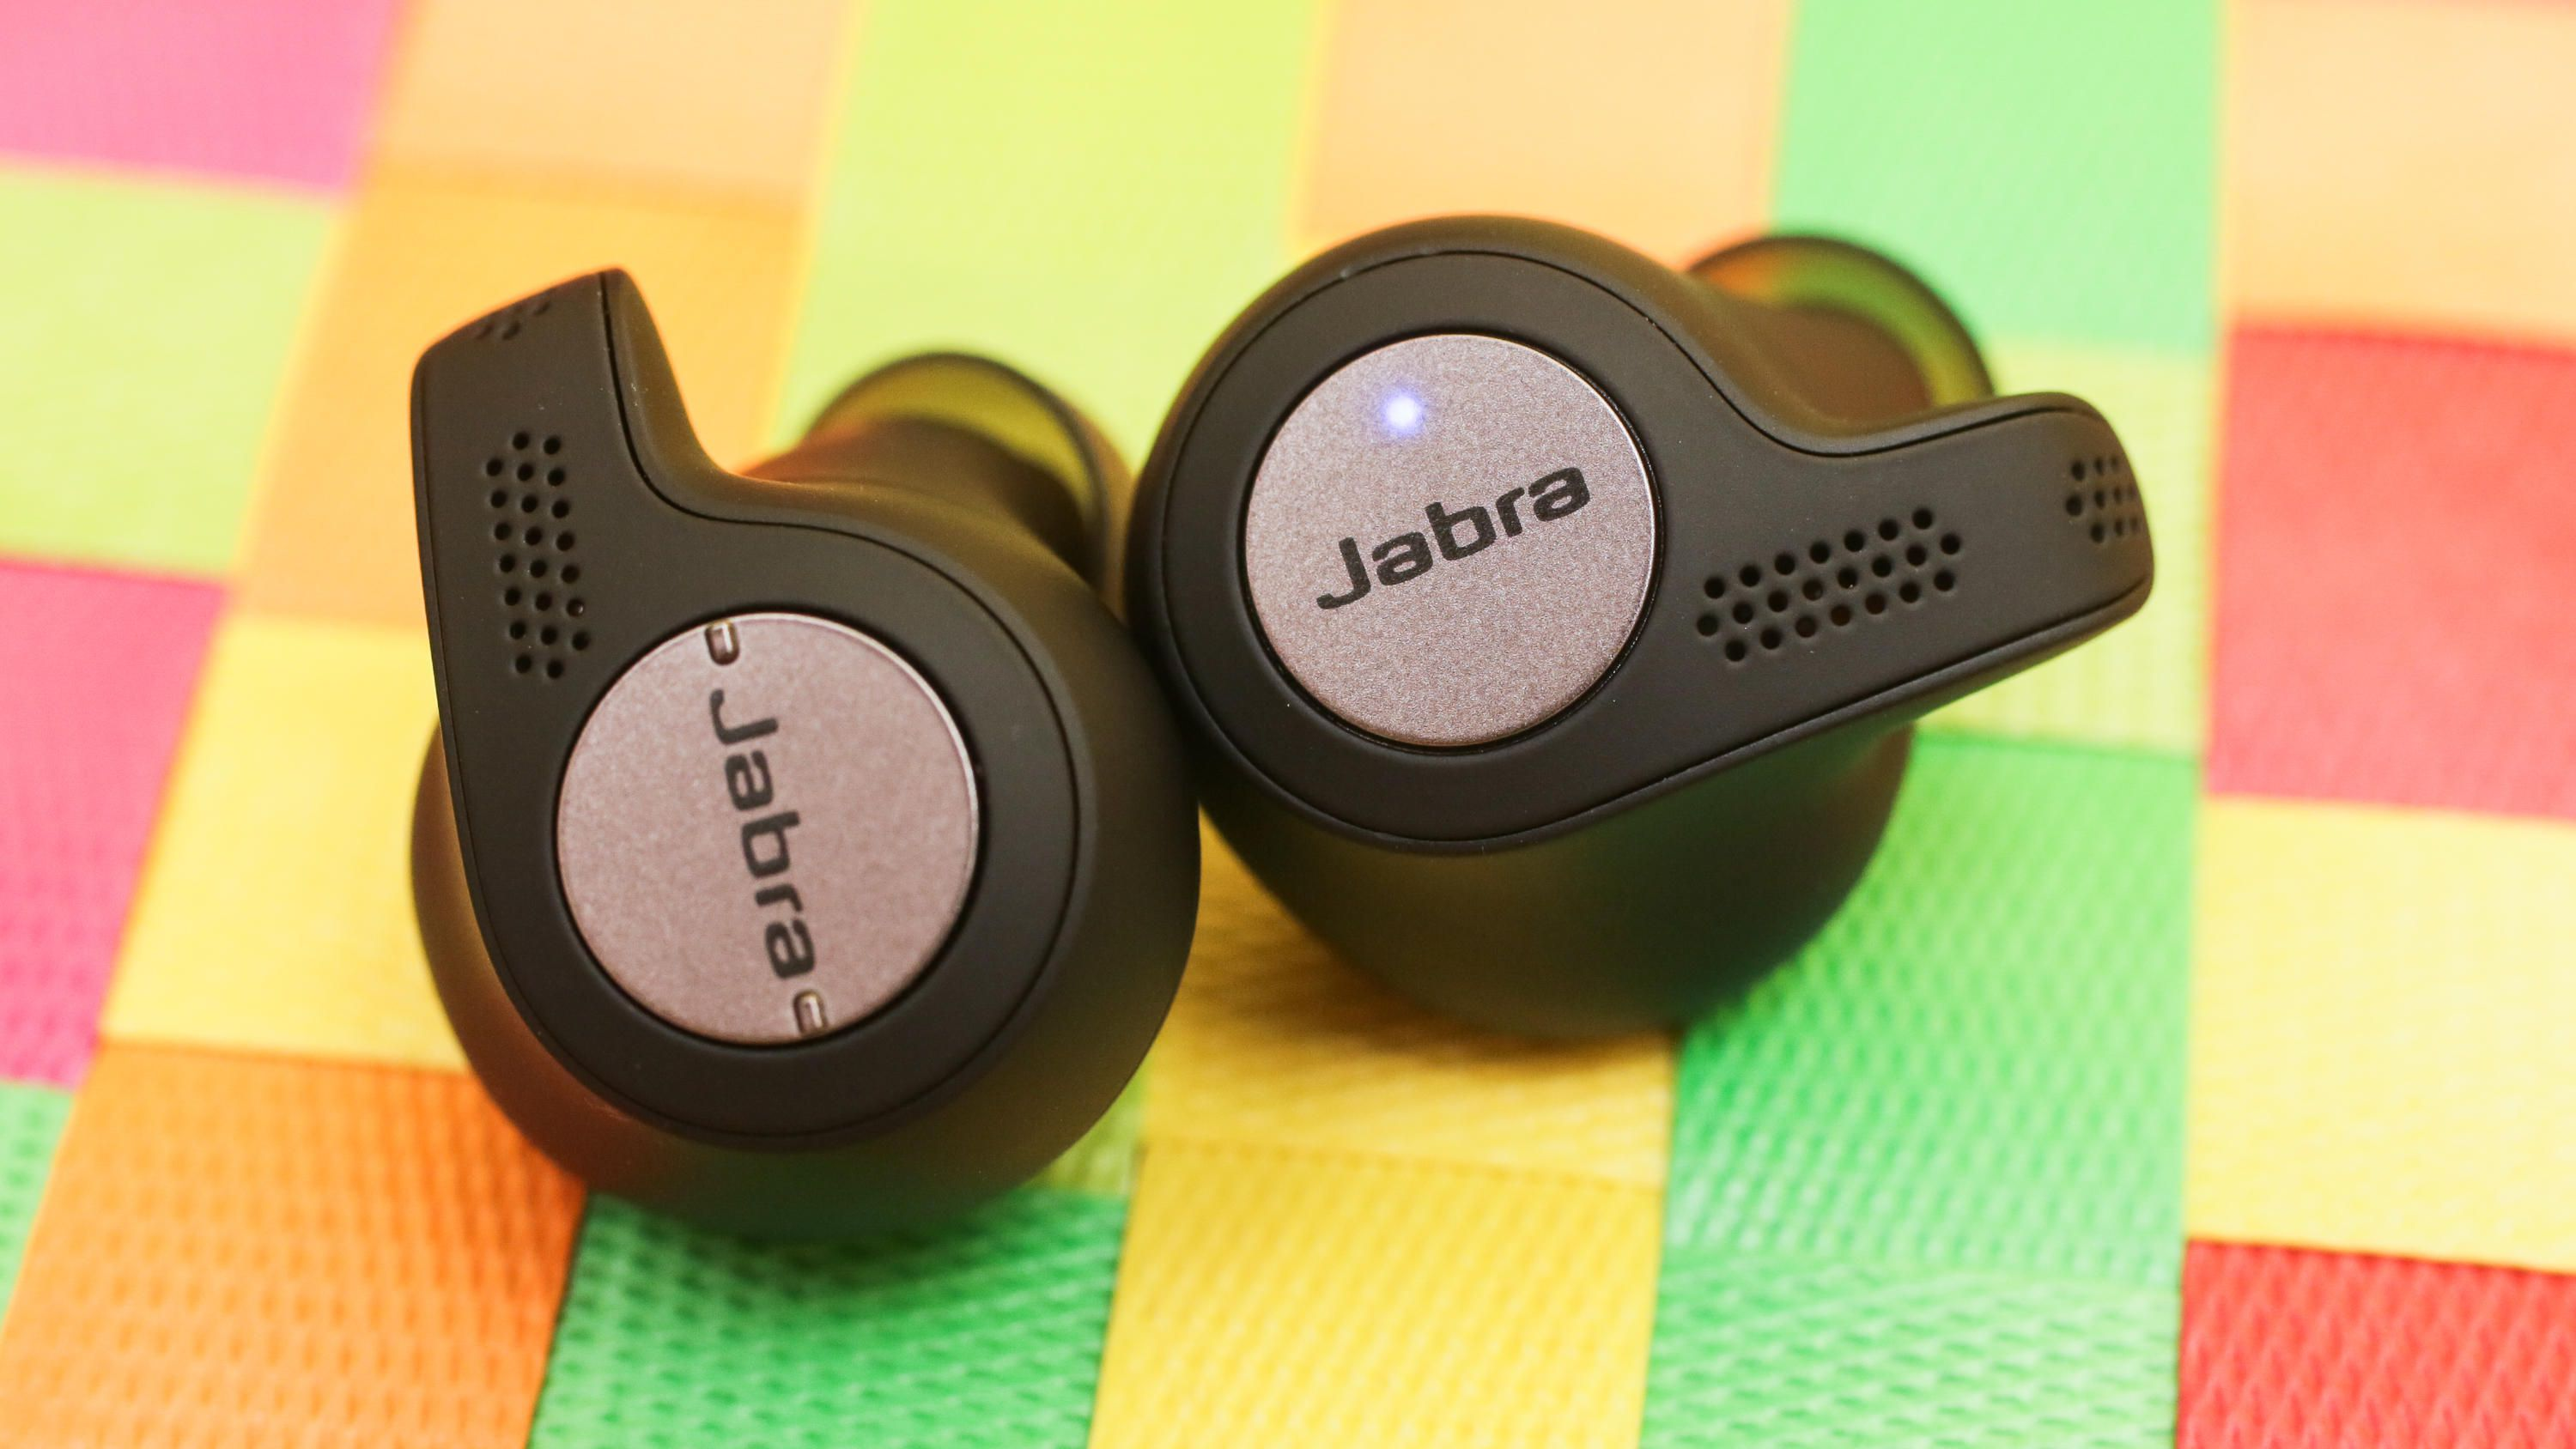 Buy the Latest Jabra Elite 65t @626 AED on Souq